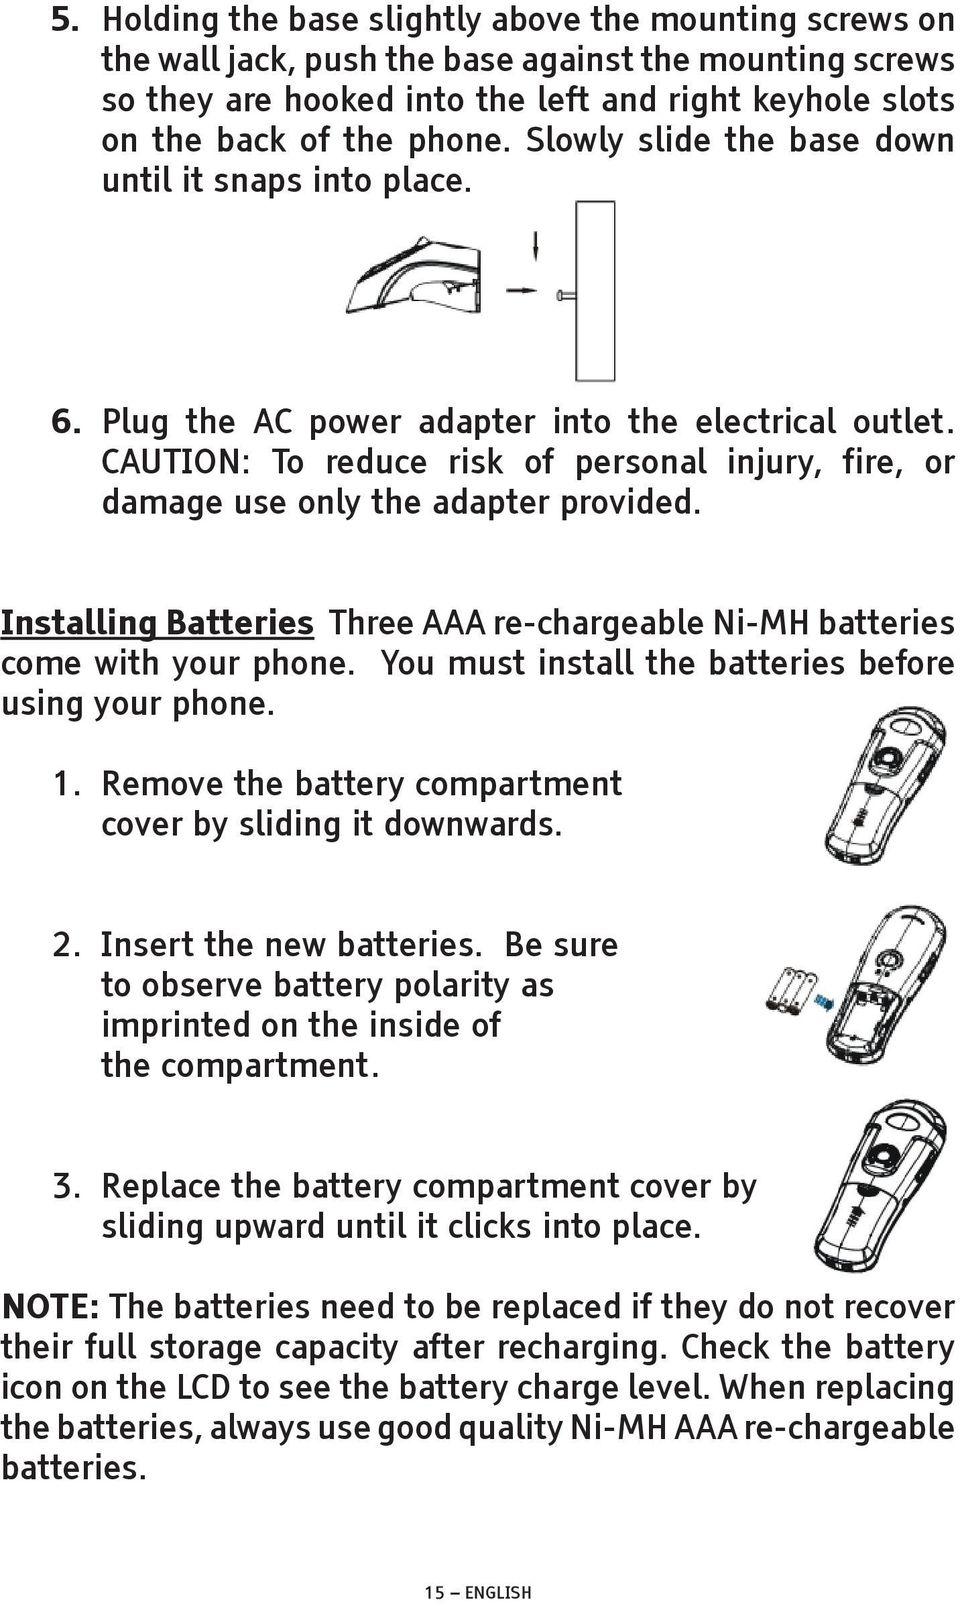 CAUTION: To reduce risk of personal injury, fire, or damage use only the adapter provided. Installing Batteries Three AAA re-chargeable Ni-MH batteries come with your phone.